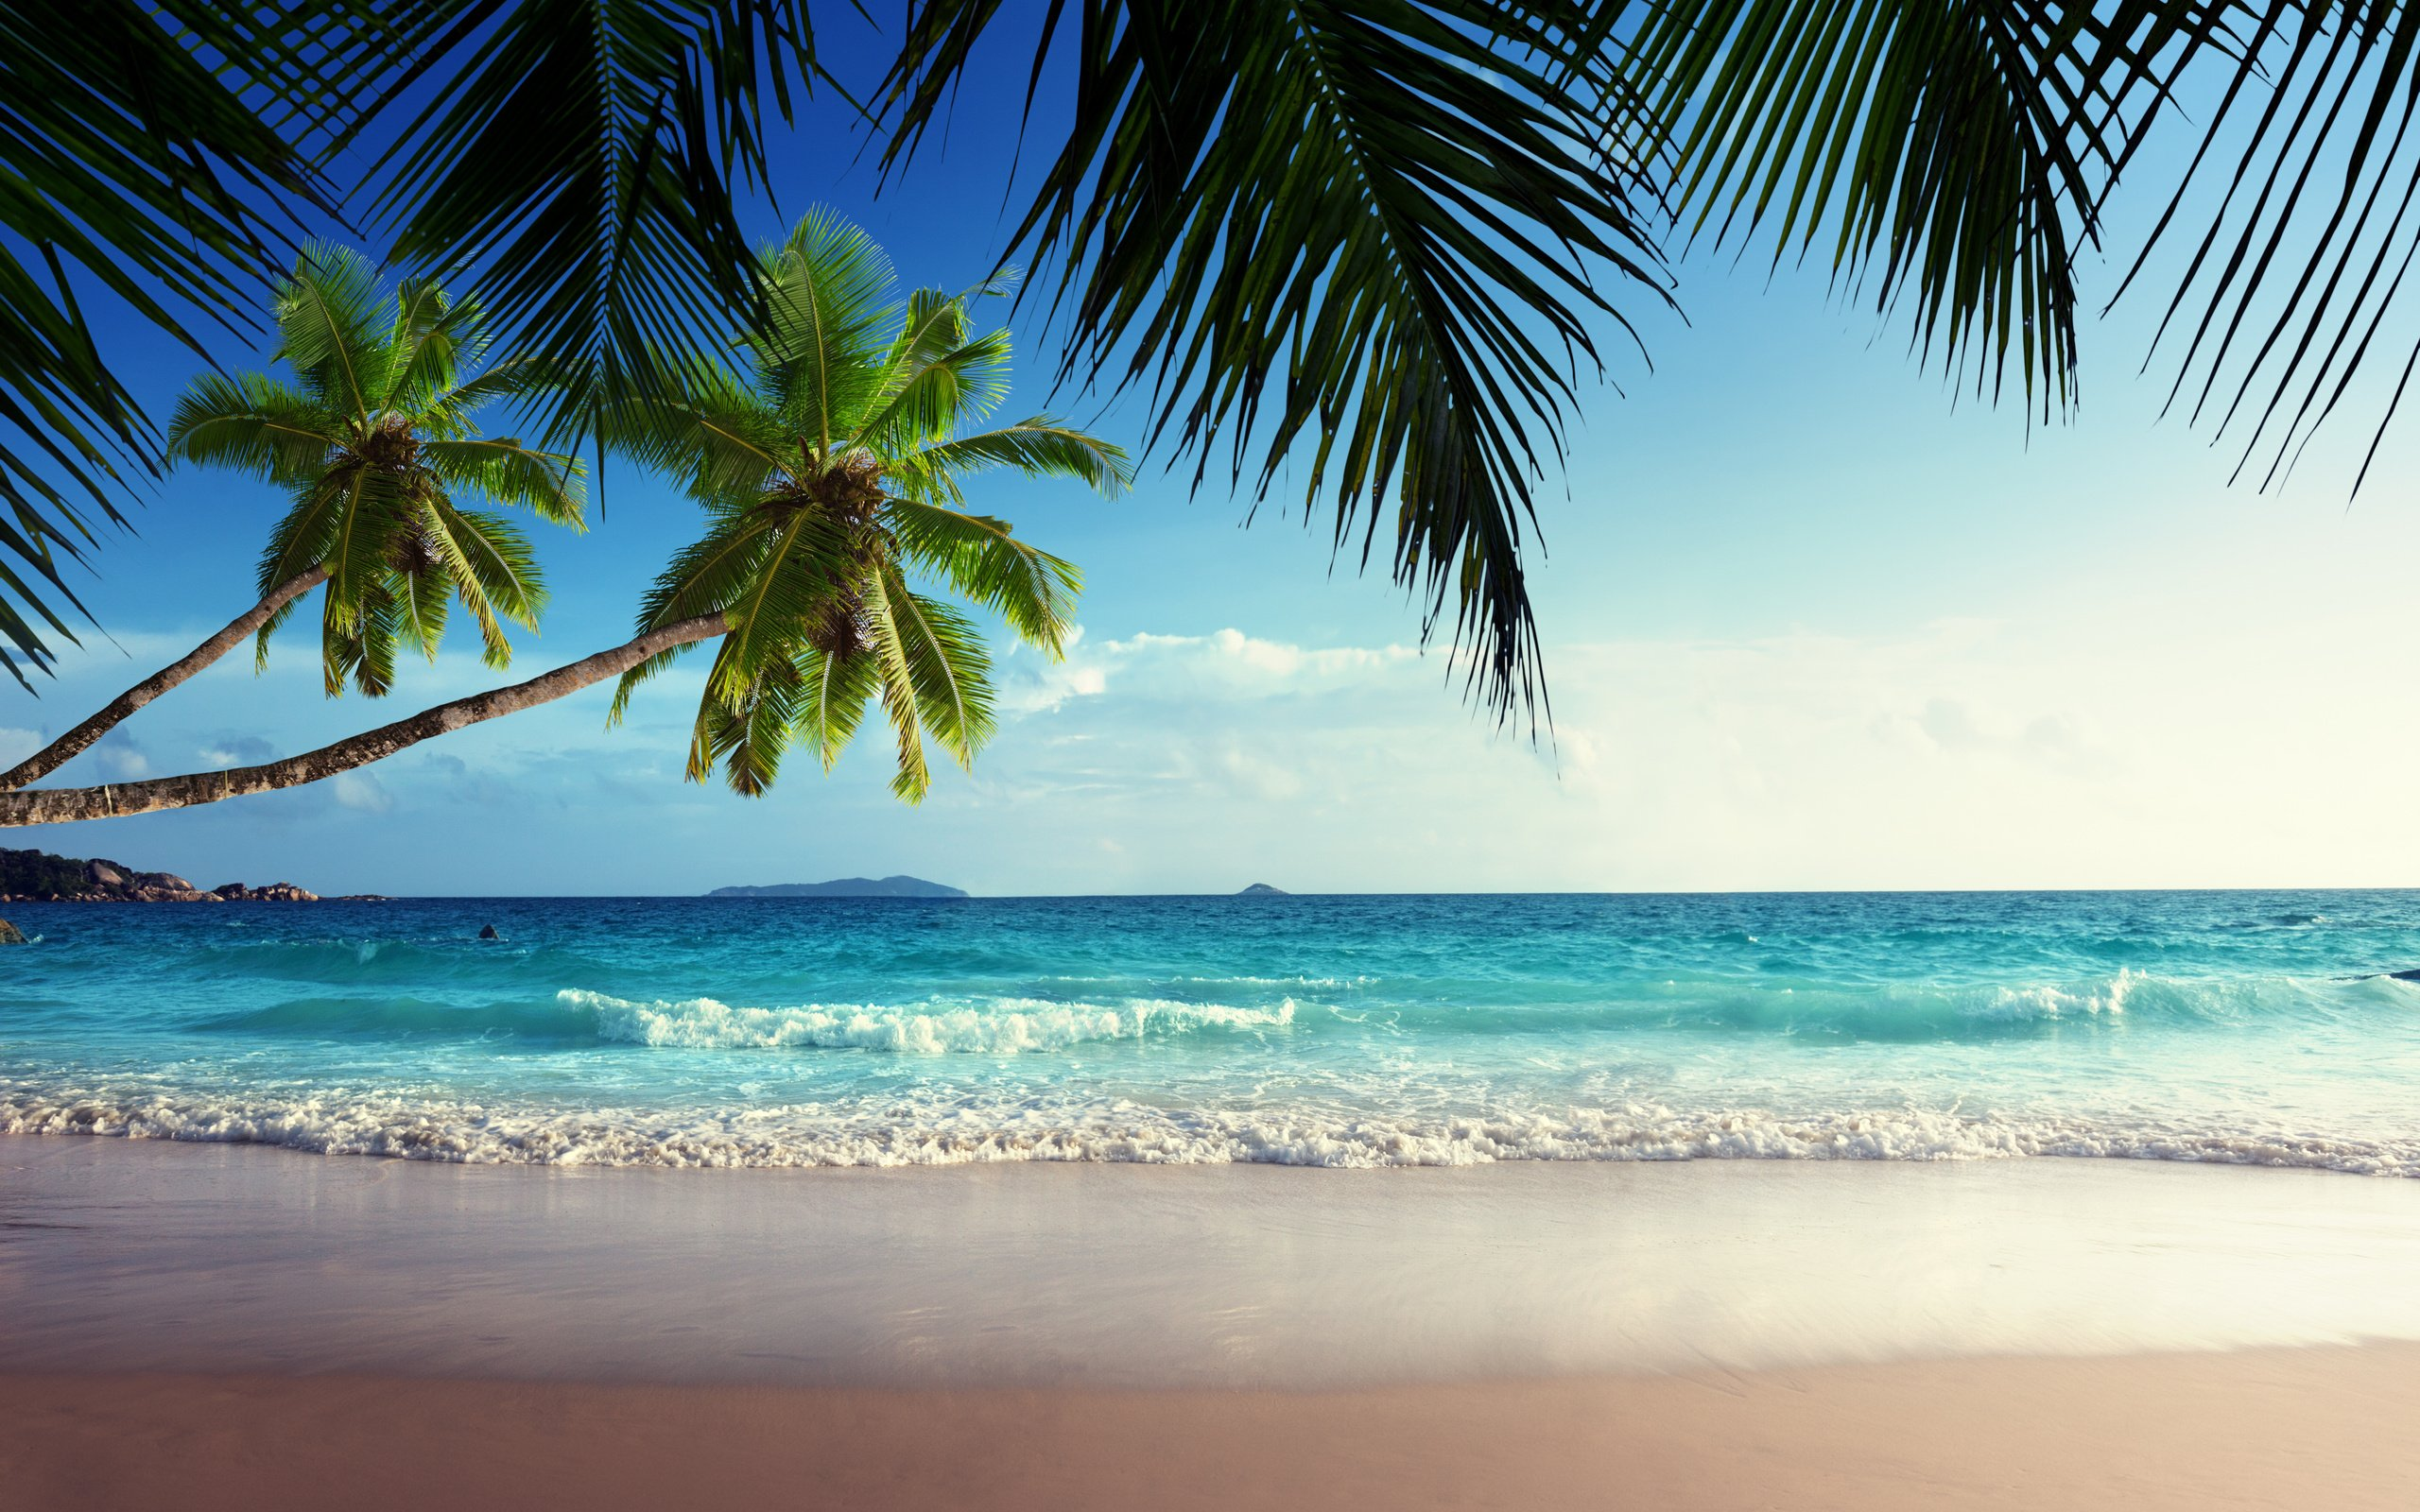 tropical_beach_paradise_wallpaper